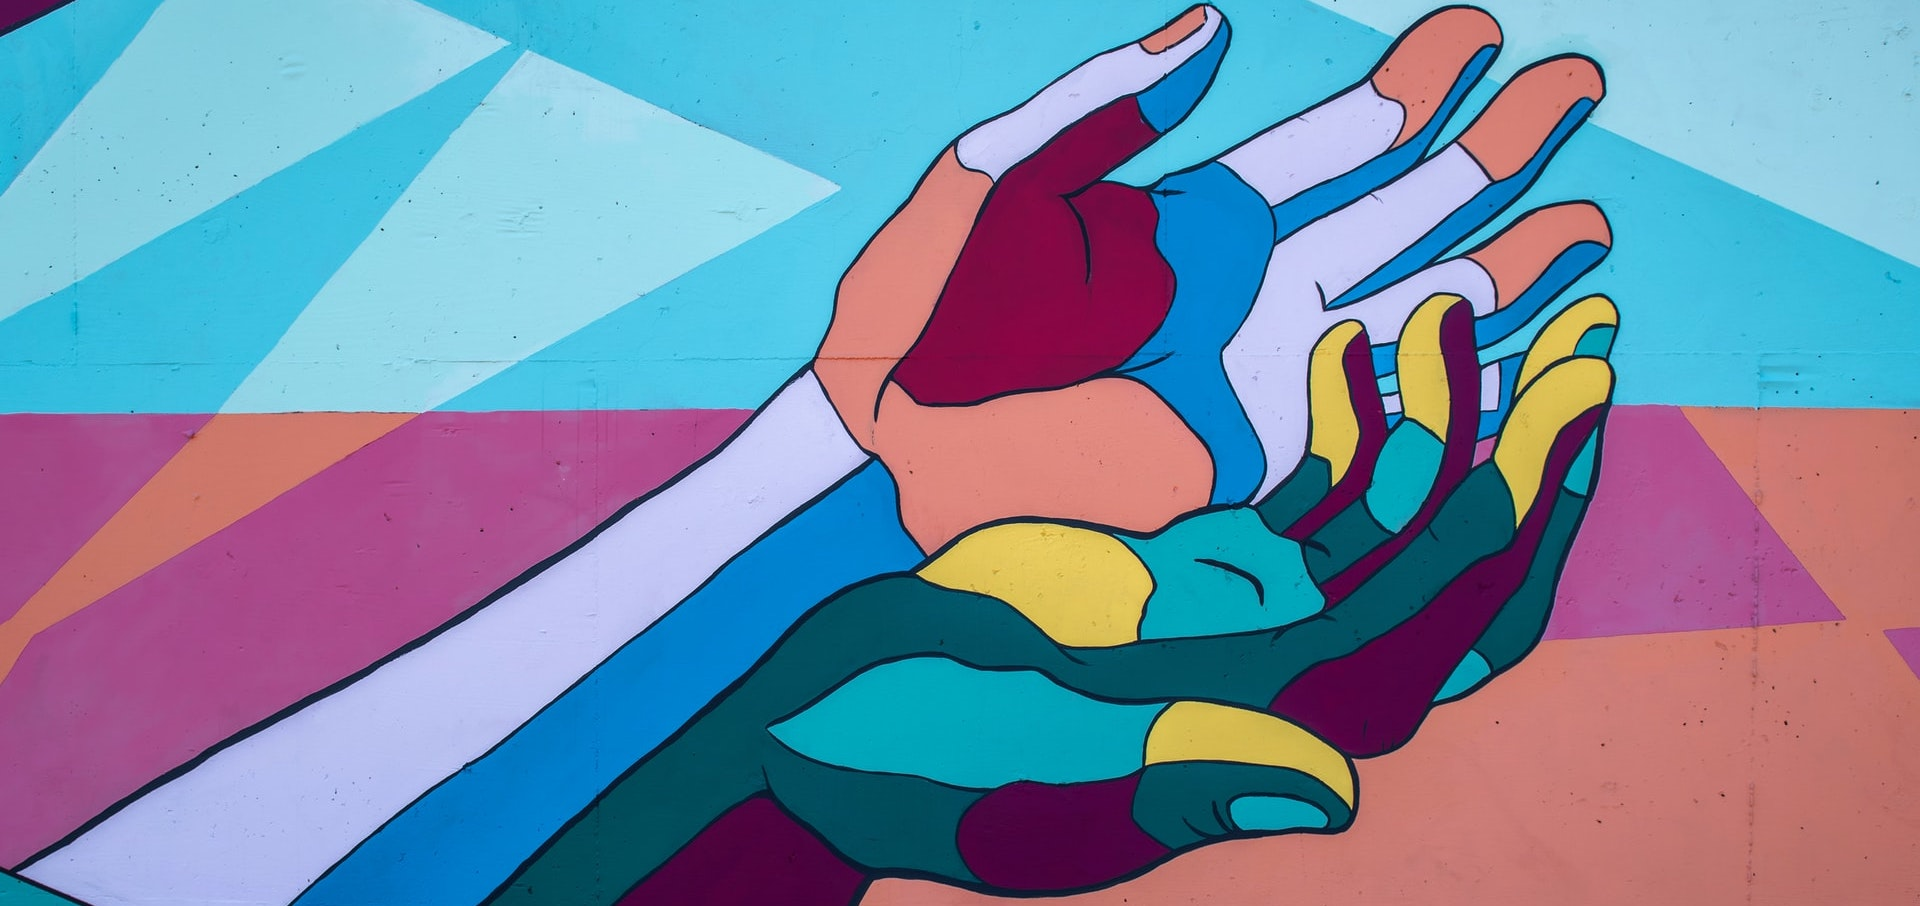 Abstract illustration of two duo-tone coloured hands touching the side of the palms symbolising diversity and inclusion.